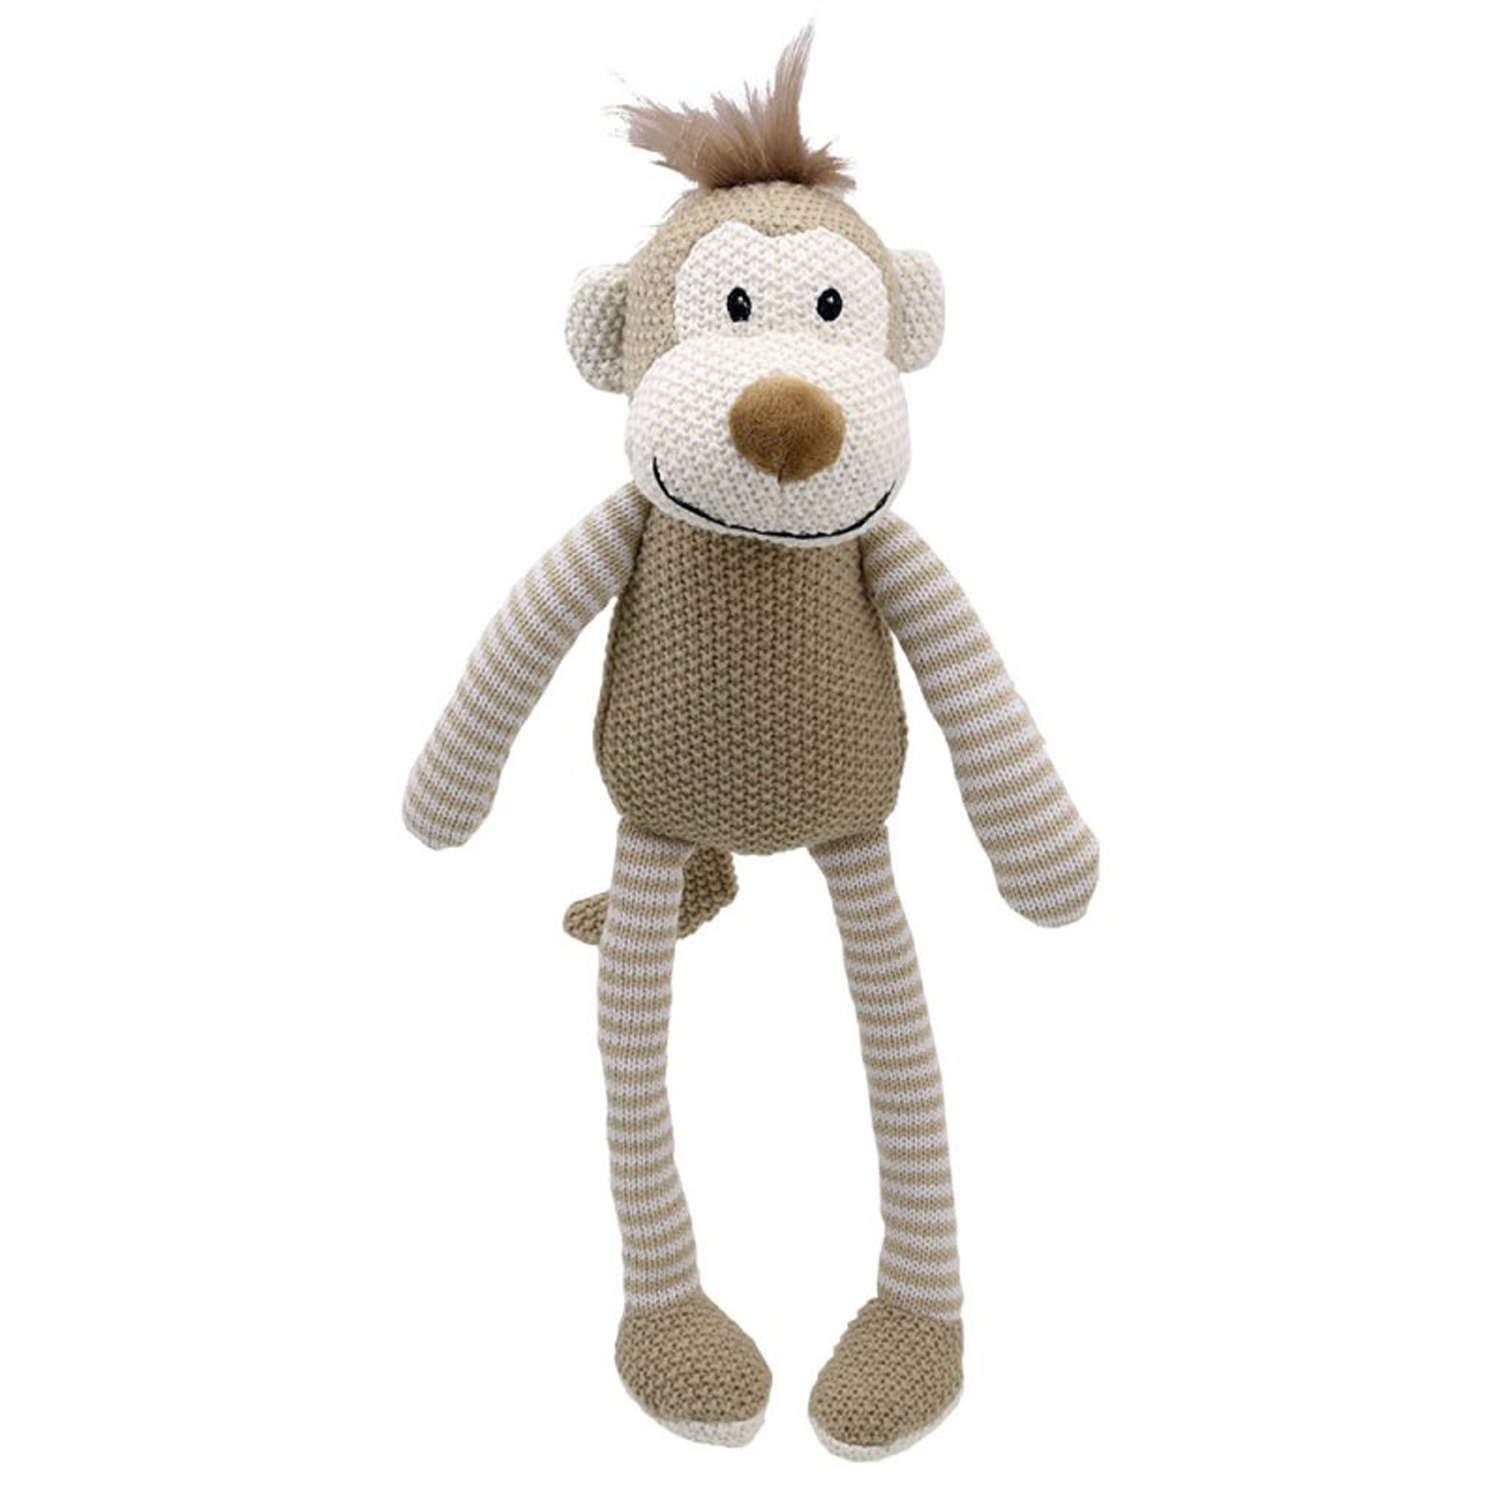 Wilberry knitted Monkey